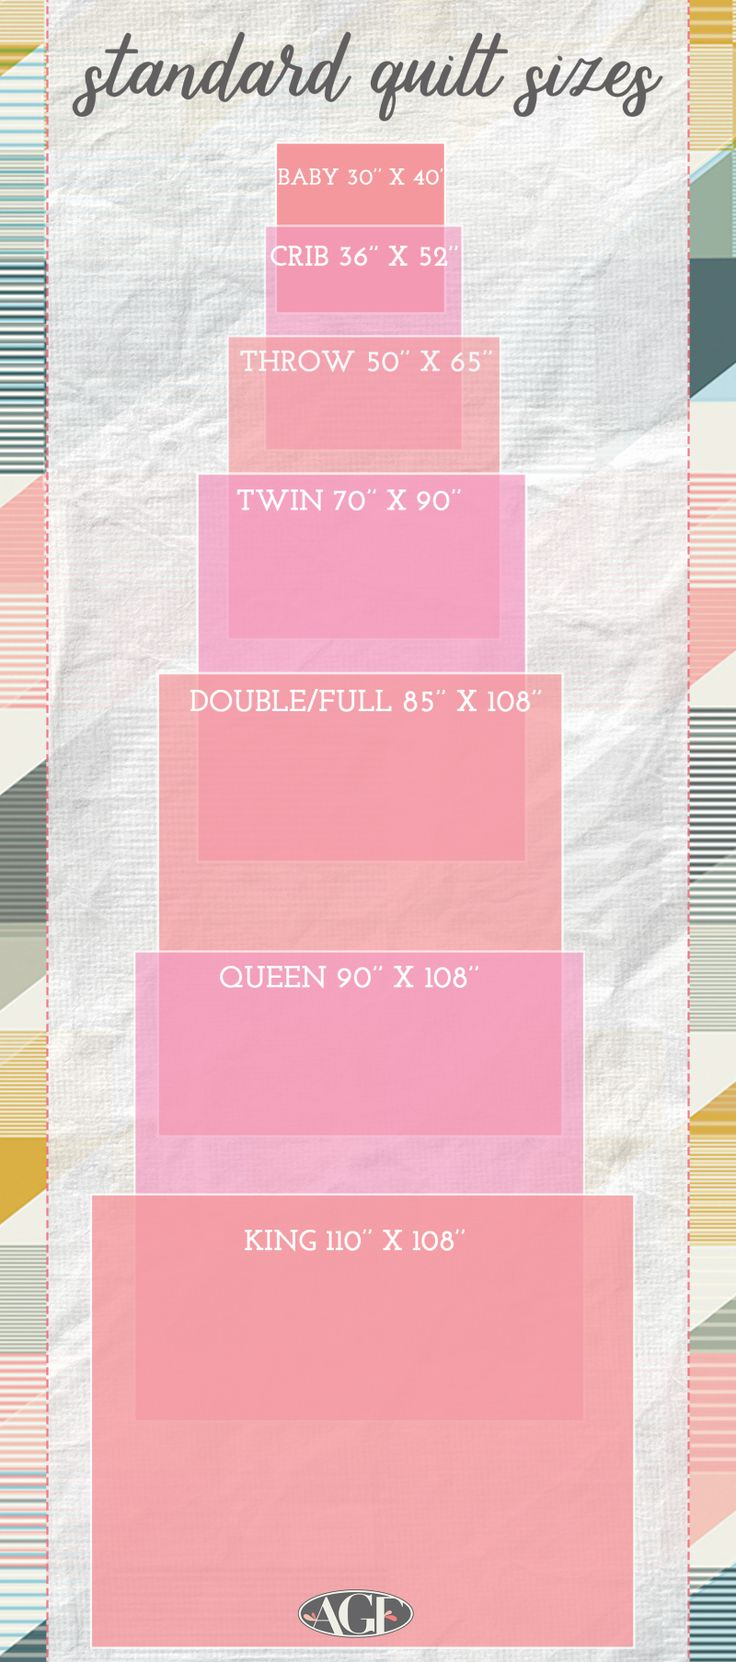 Quilt sizes graphic!